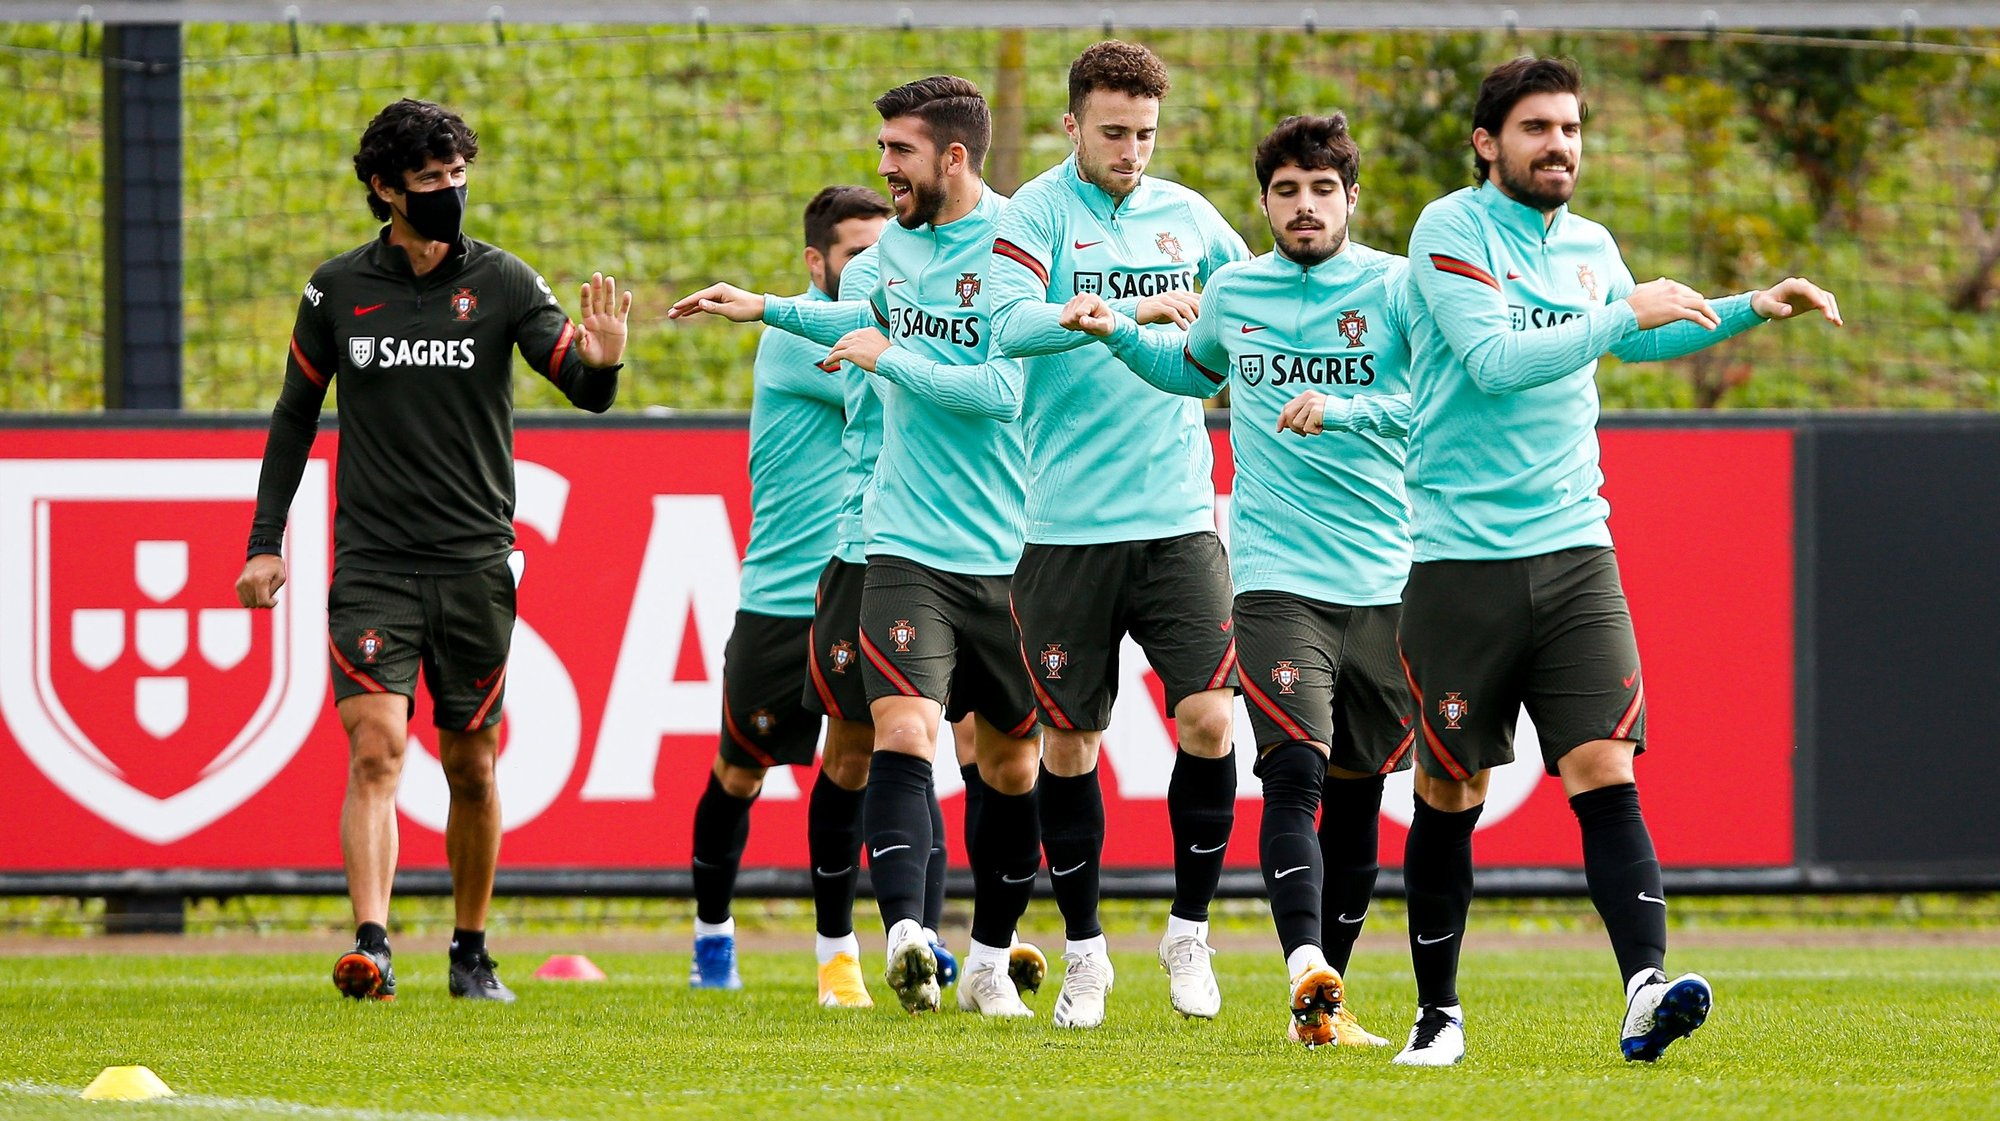 epa08821982 A handout photo made available by Portuguese Football Federation (FPF) shows Portugal players during a training session for the upcoming UEFA Nations League match against Croatia, in Oeiras, Portugal, 15 November 2020.  EPA/DIOGO PINTO / HANDOUT  HANDOUT EDITORIAL USE ONLY/NO SALES